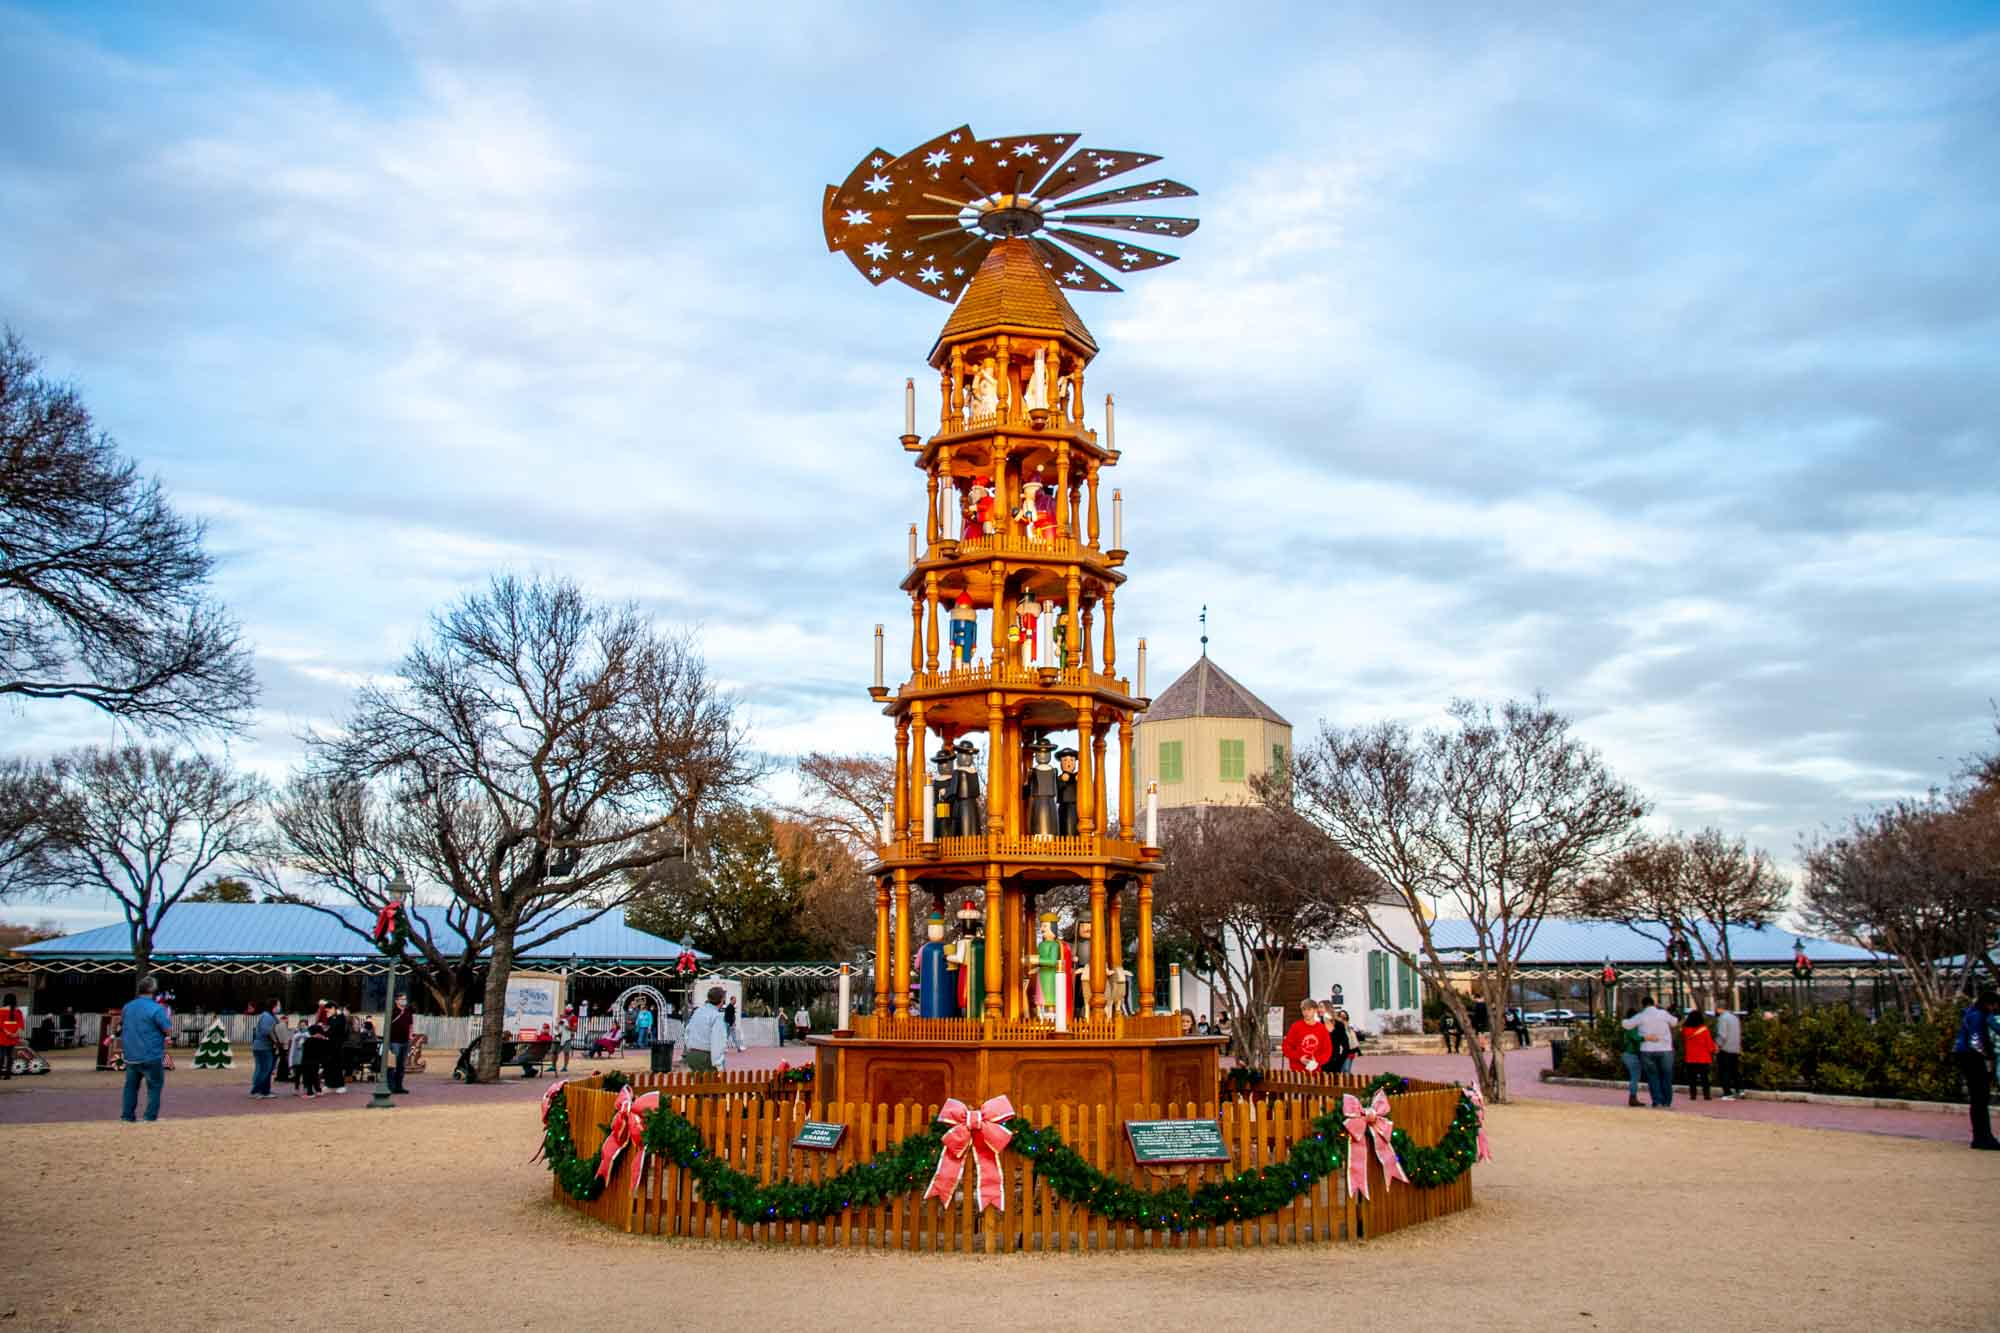 Tall, wooden German Christmas pyramid with a propeller displayed outside